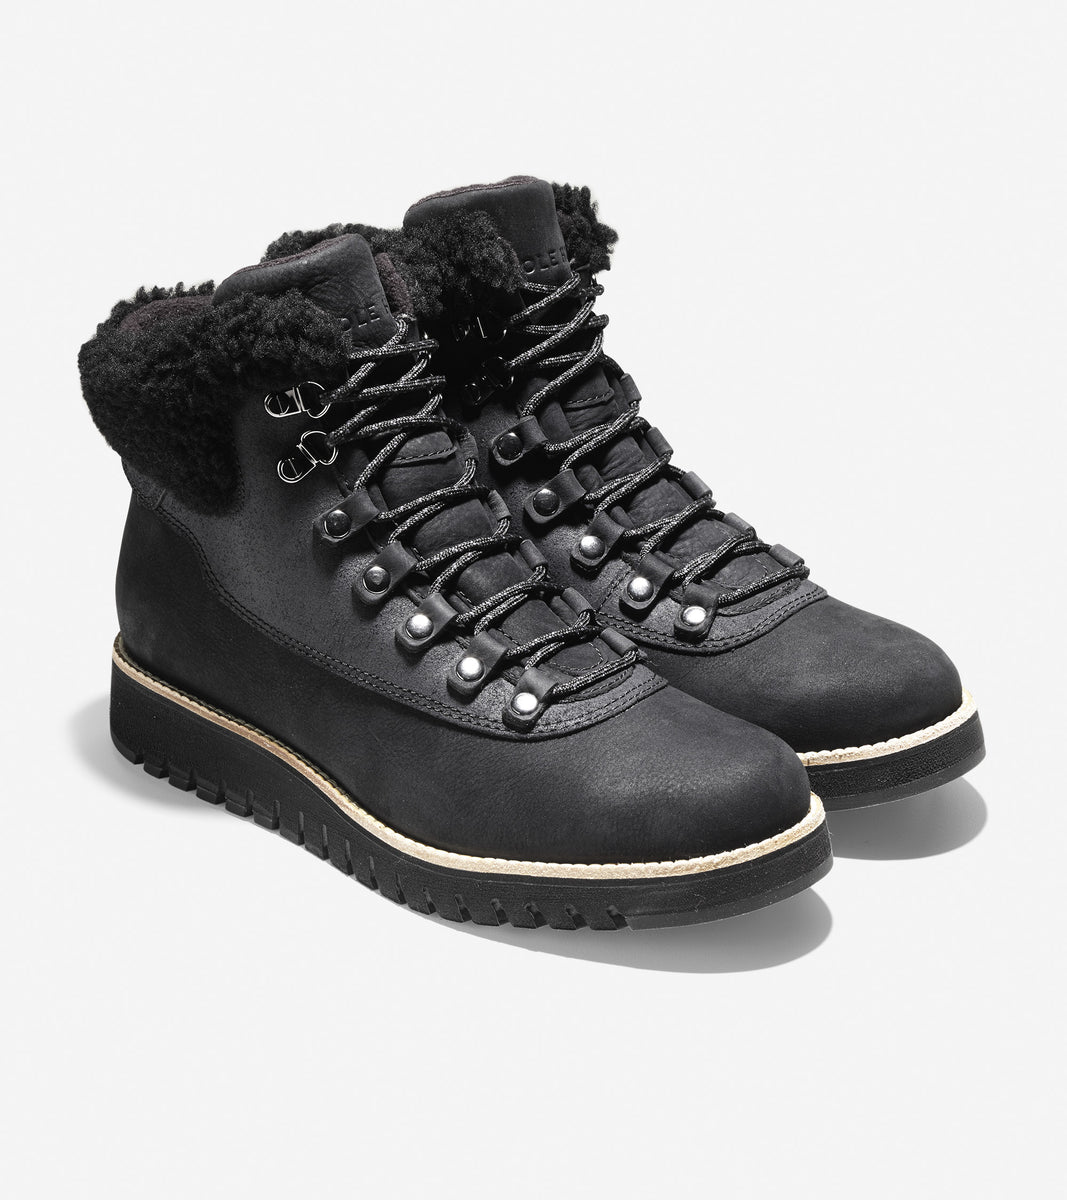 ZERØGRAND Explore Hiker Boot